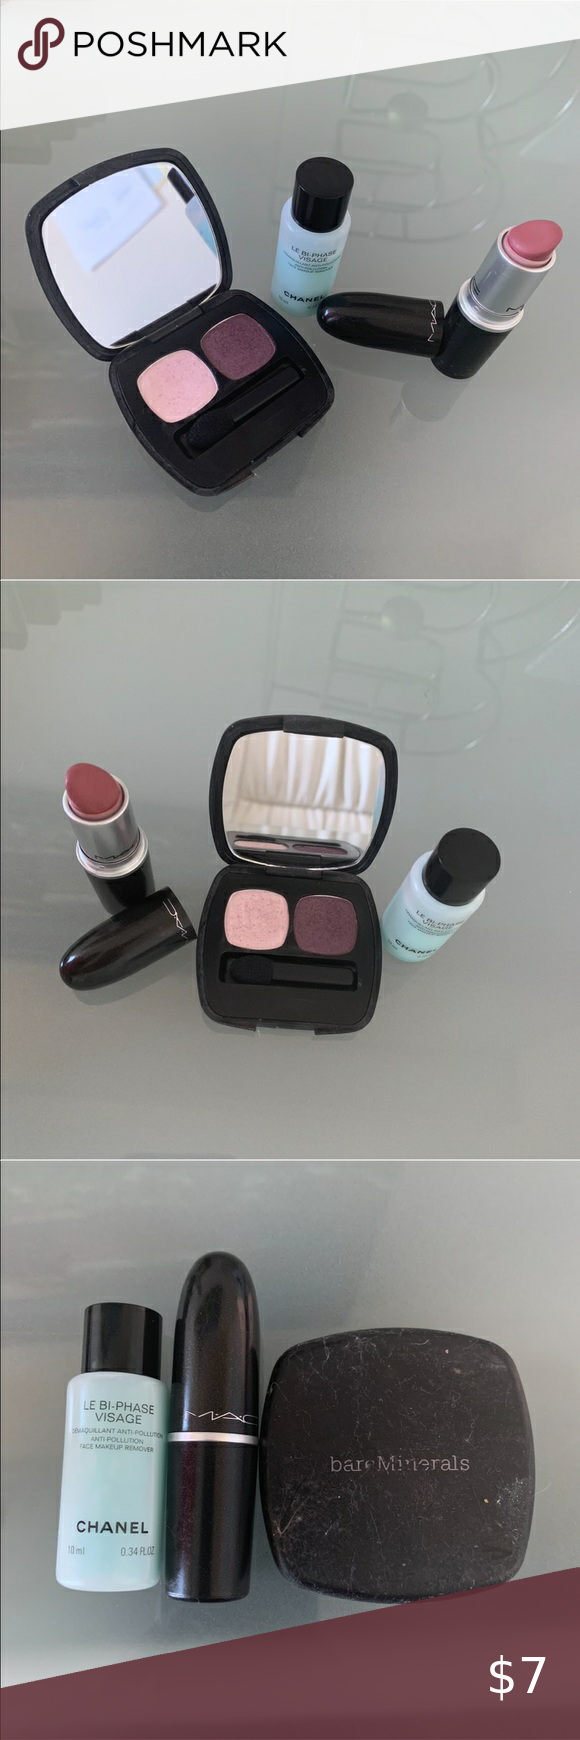 FREE Item!! in 2020 Bare minerals eyeshadow, Cosmetics